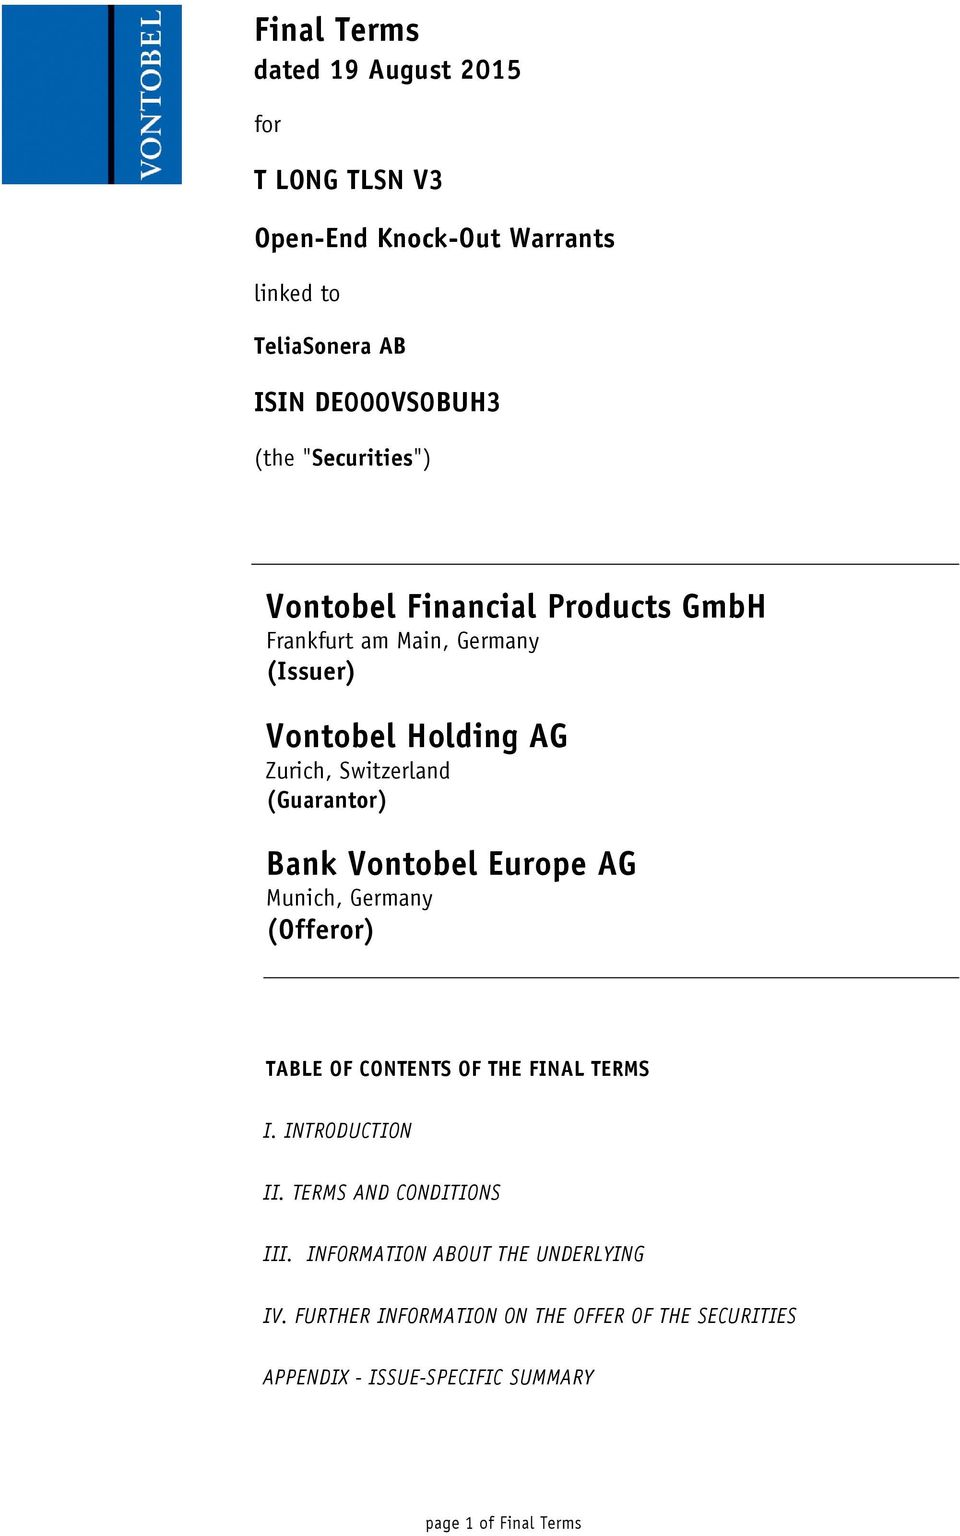 Bank Vontobel Europe AG Munich, Germany (Offeror) TABLE OF CONTENTS OF THE FINAL TERMS I. INTRODUCTION II. TERMS AND CONDITIONS III.